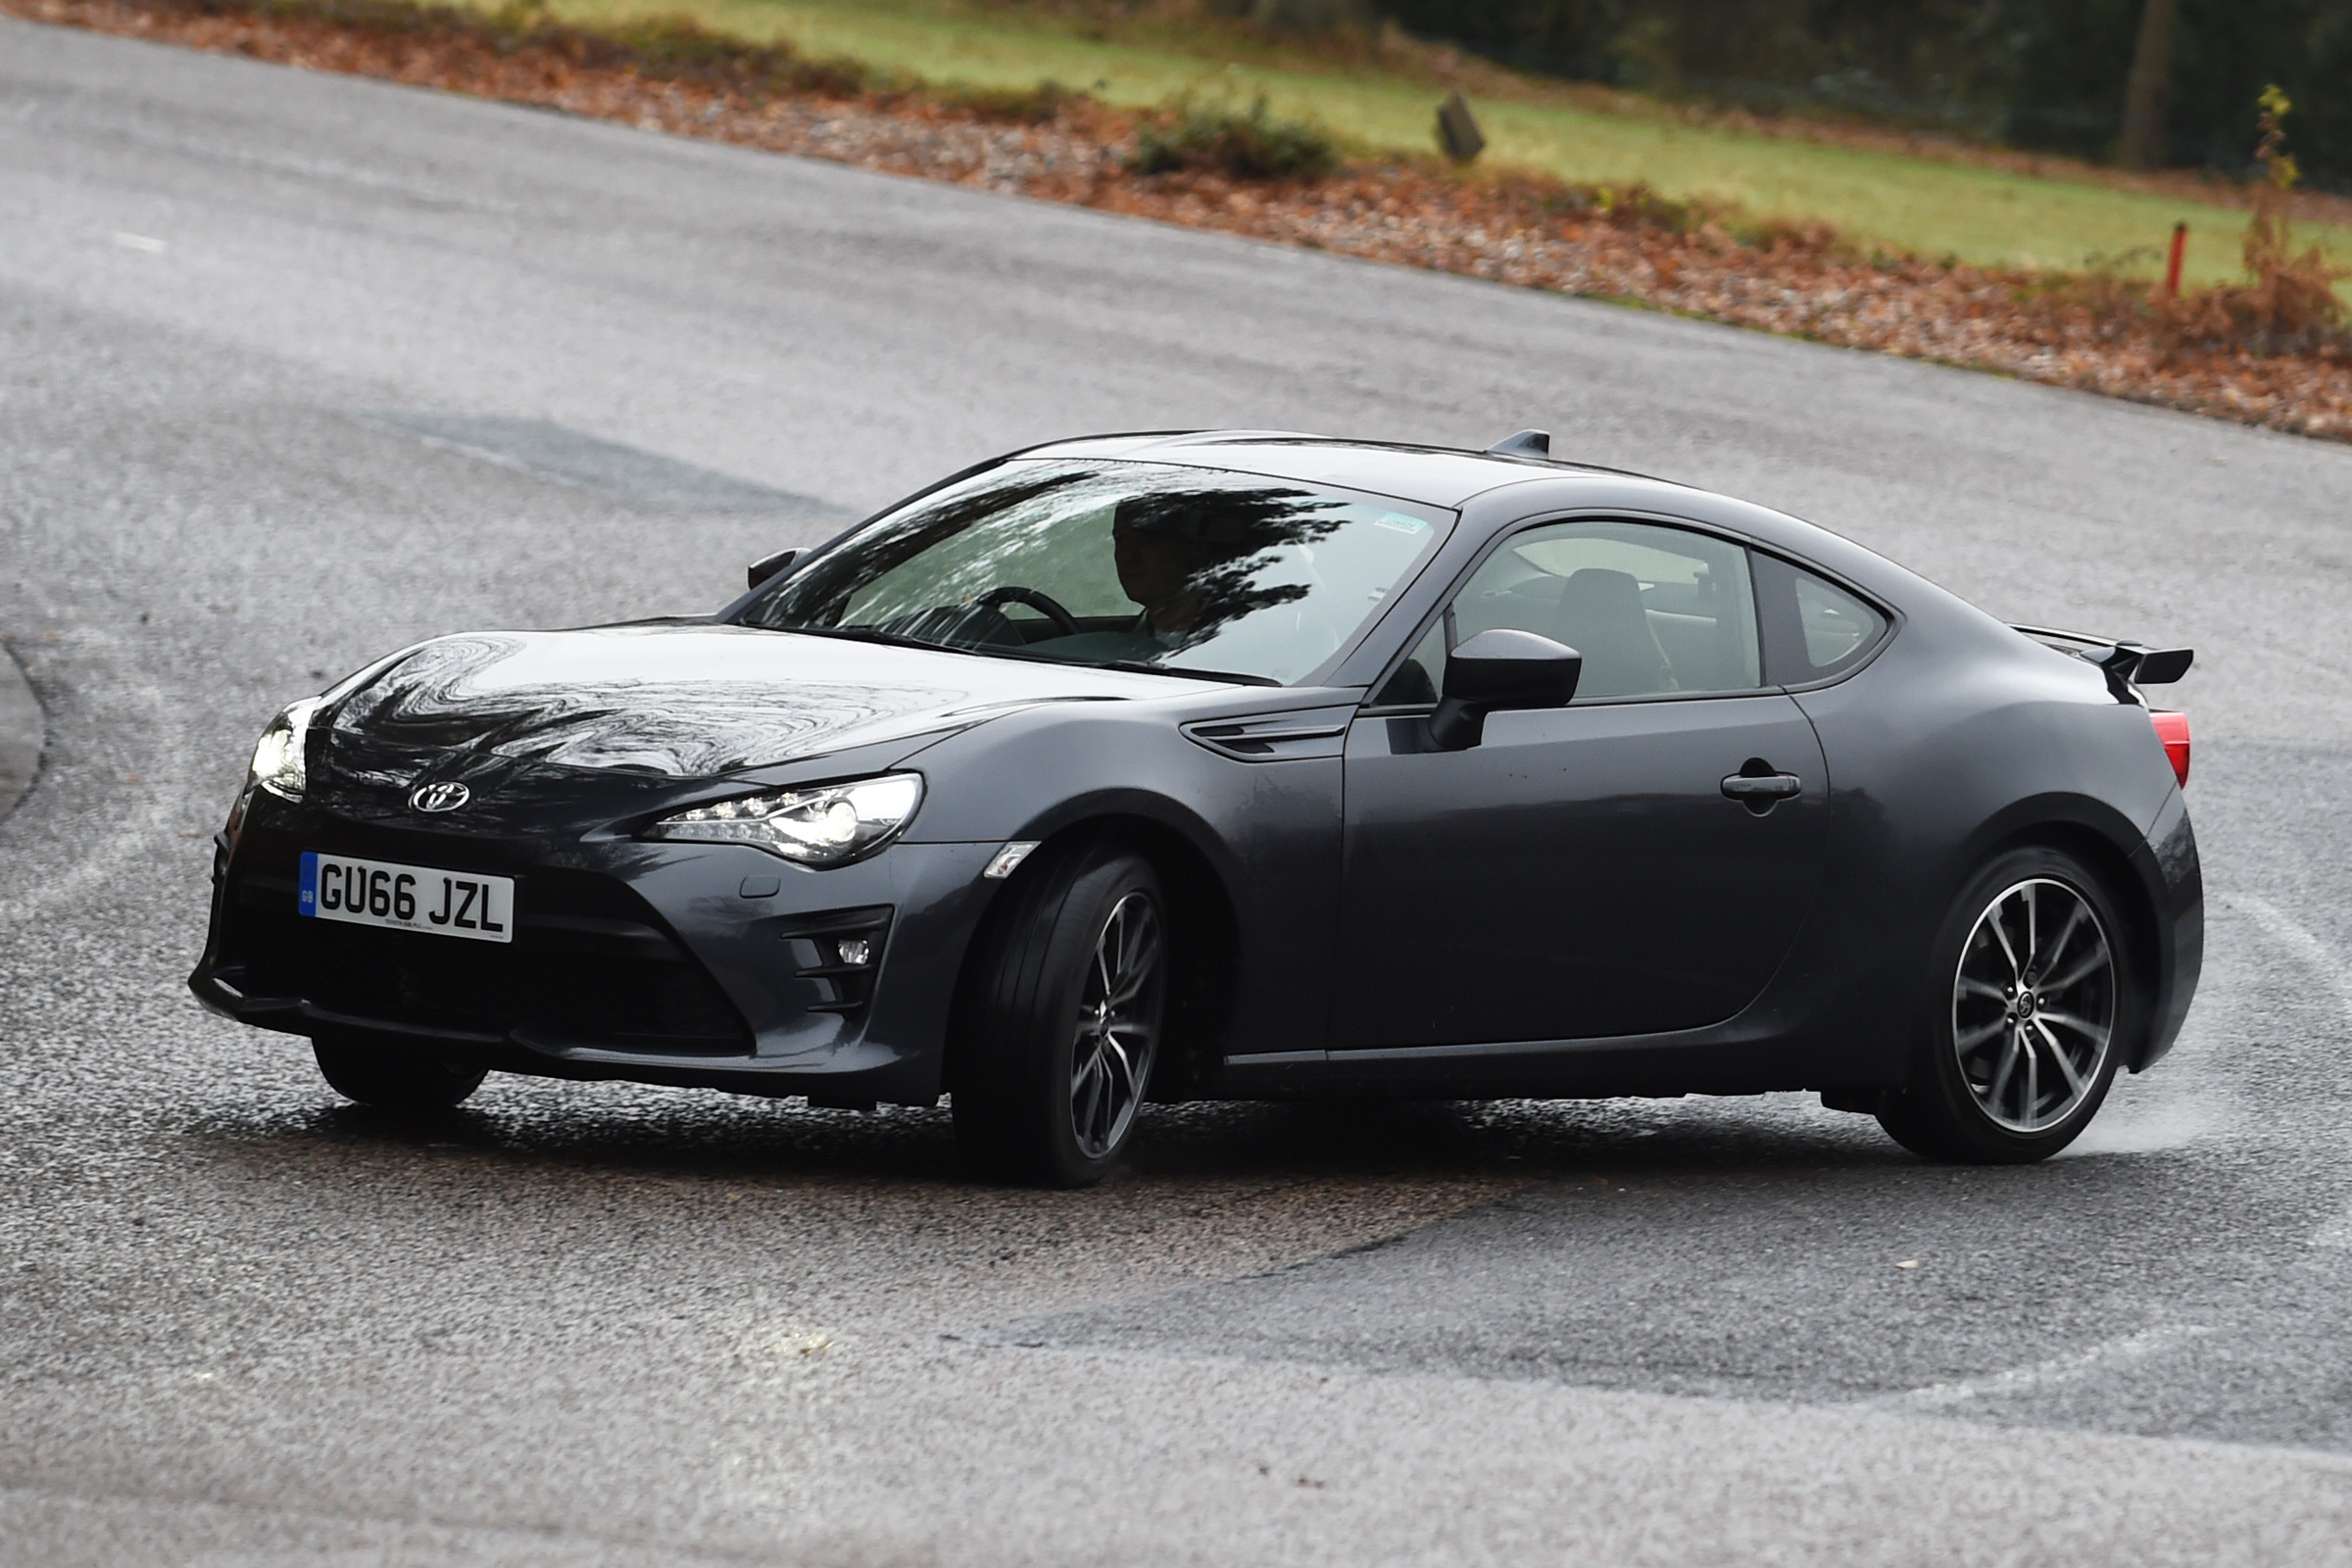 2017 Toyota GT86 Black (View 1 of 13)